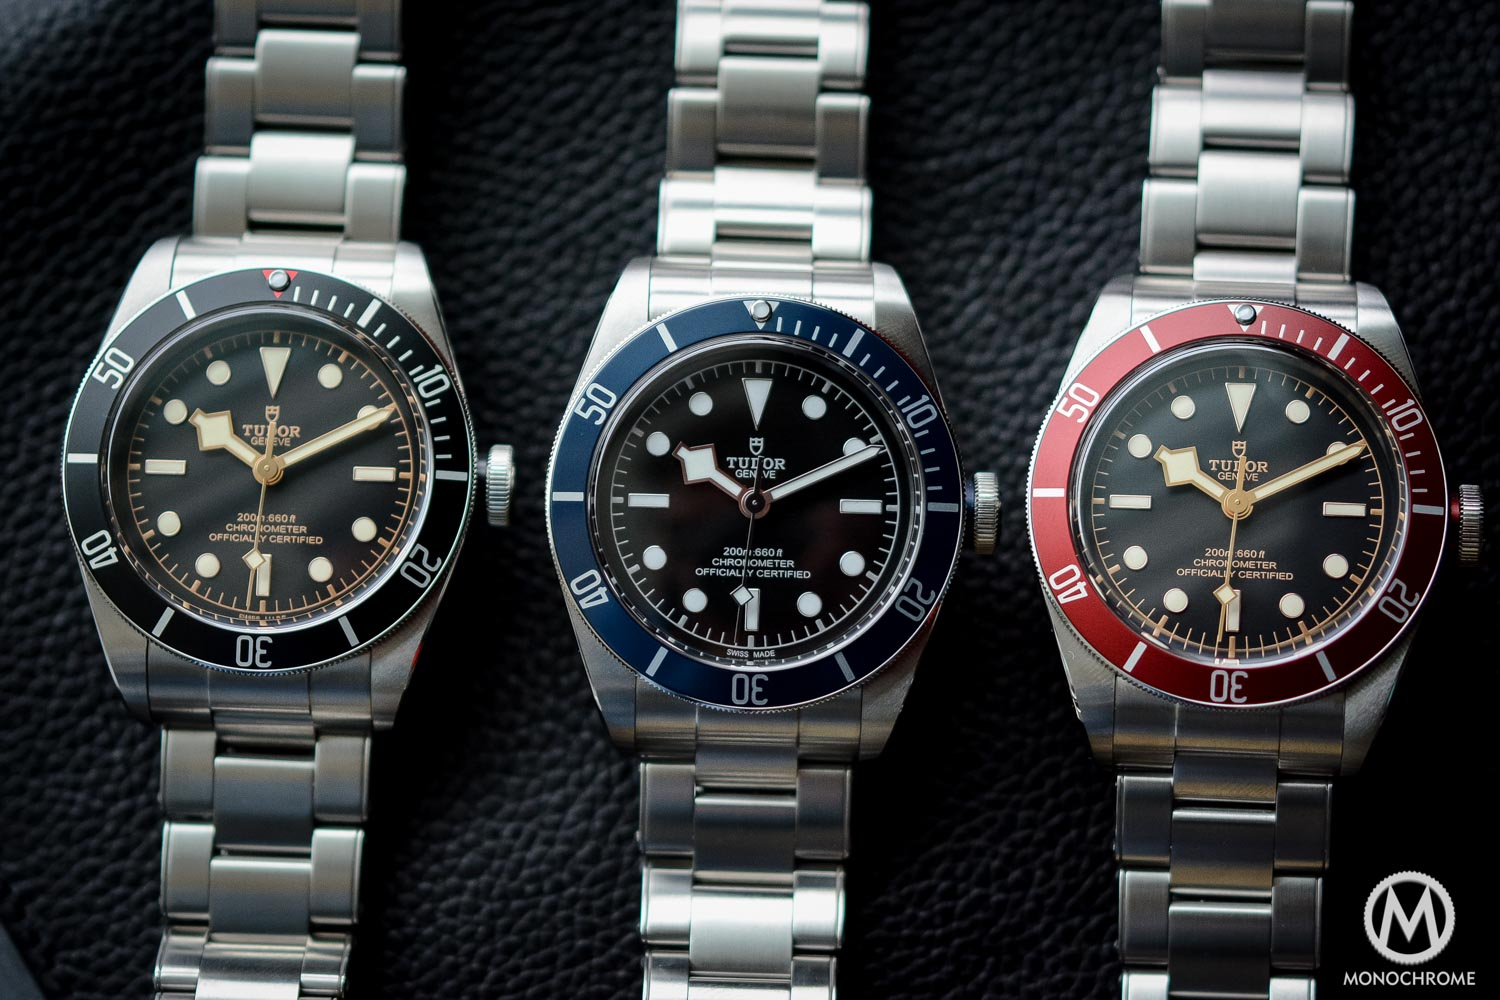 Tudor-Heritage-Black-Bay-79230-with-manufacture-movement-2016-8.